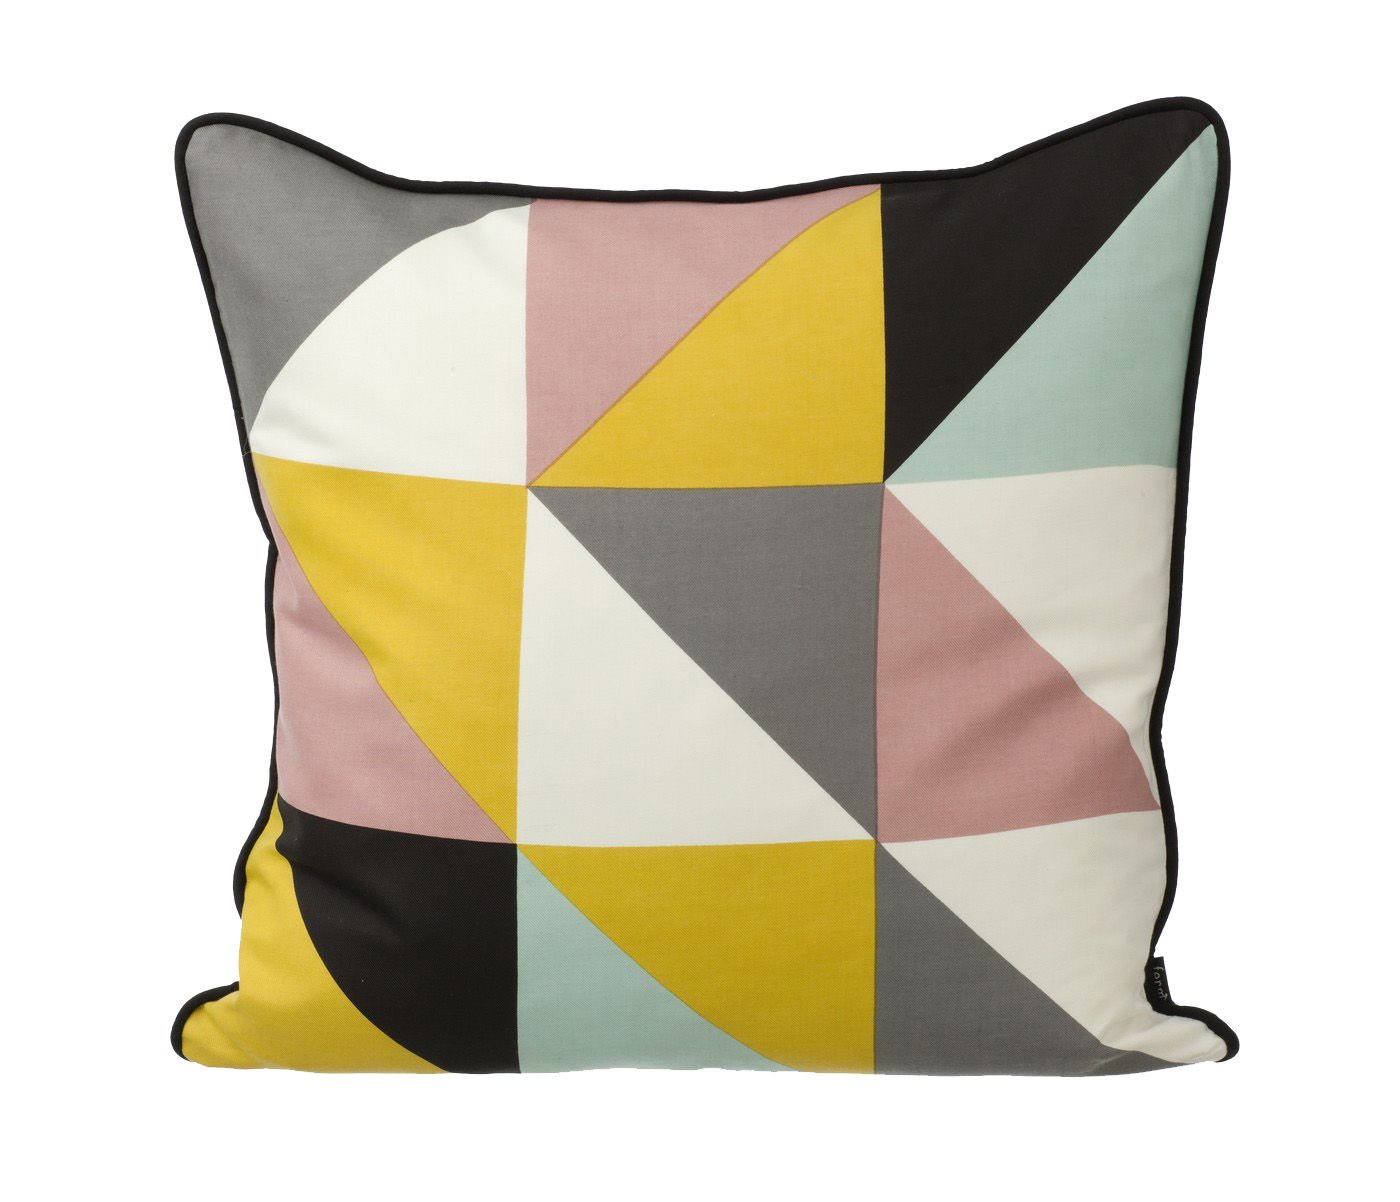 coussin remix 50 x 50 cm jaune vieux rose gris blanc cass dos noir ferm living made. Black Bedroom Furniture Sets. Home Design Ideas